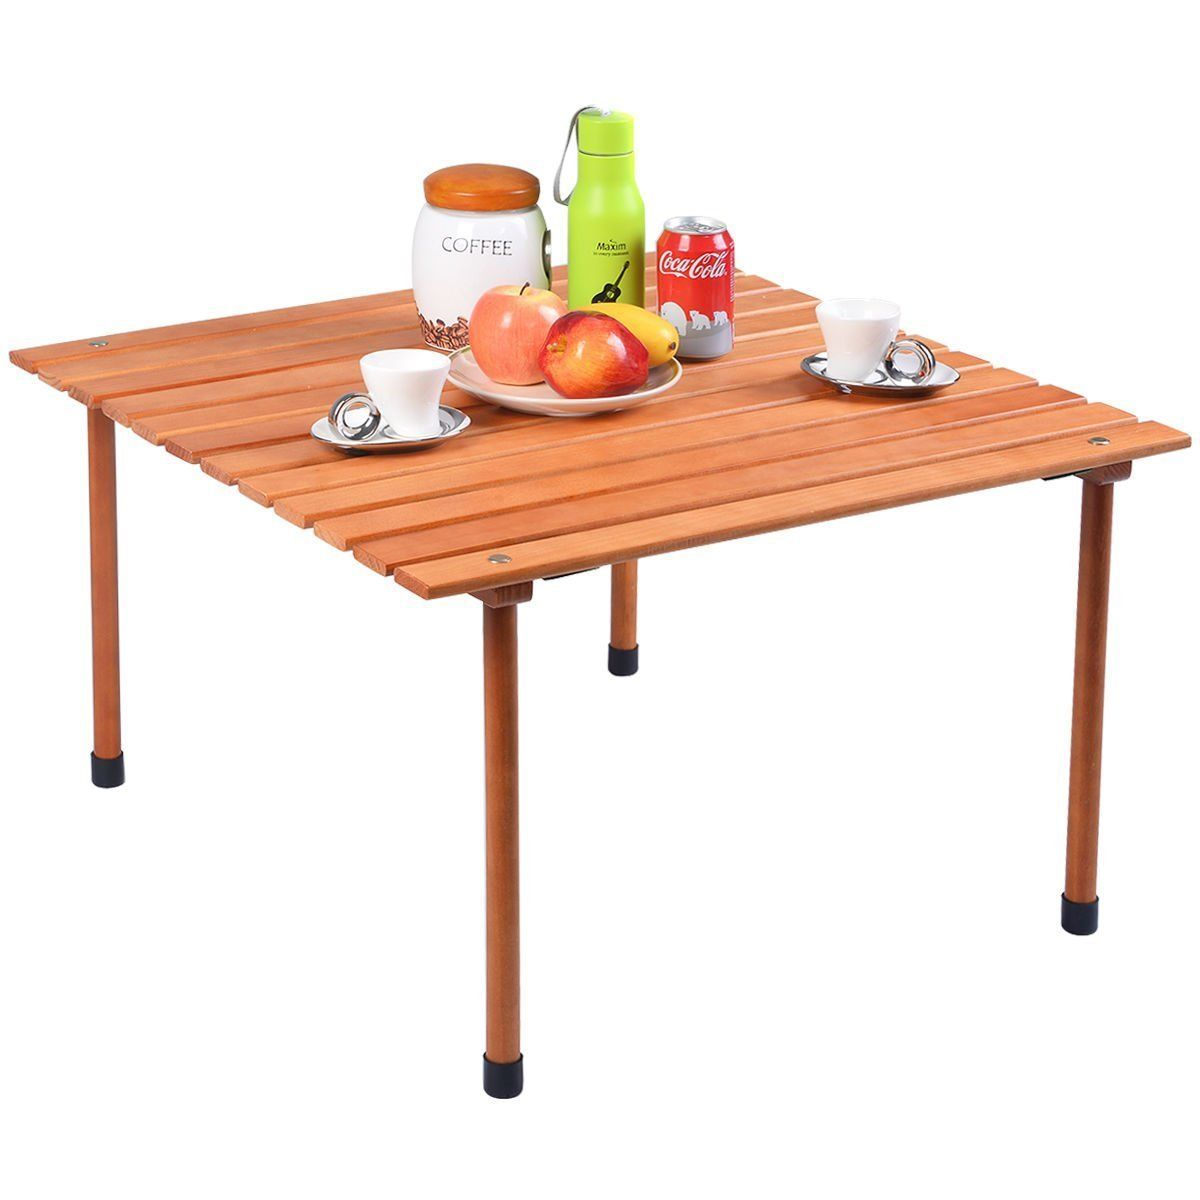 gymax folding wood roll up table camping picnic outdoor walmart com